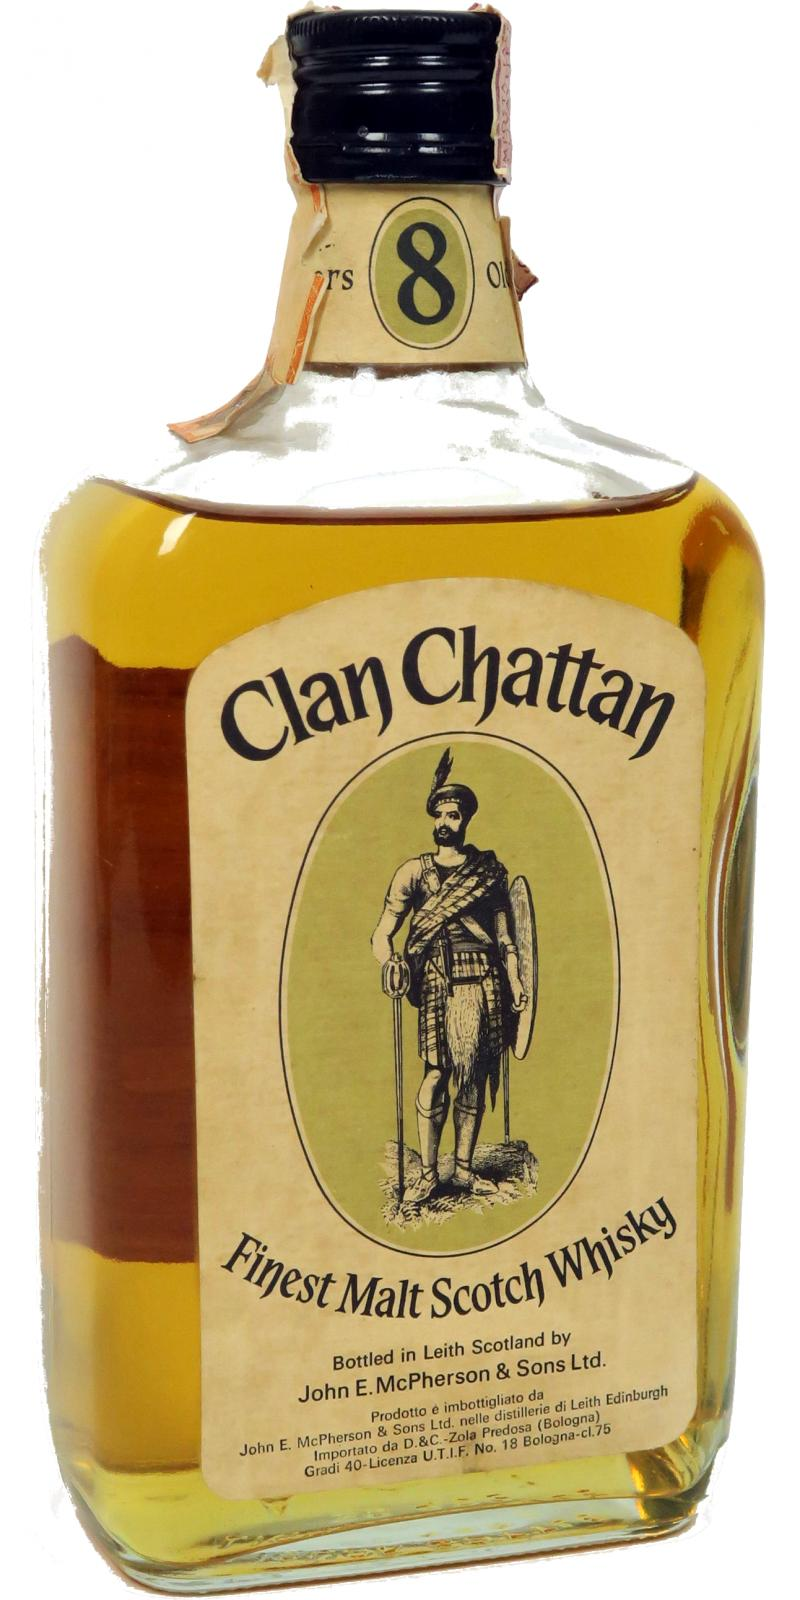 Clan Chattan 08-year-old